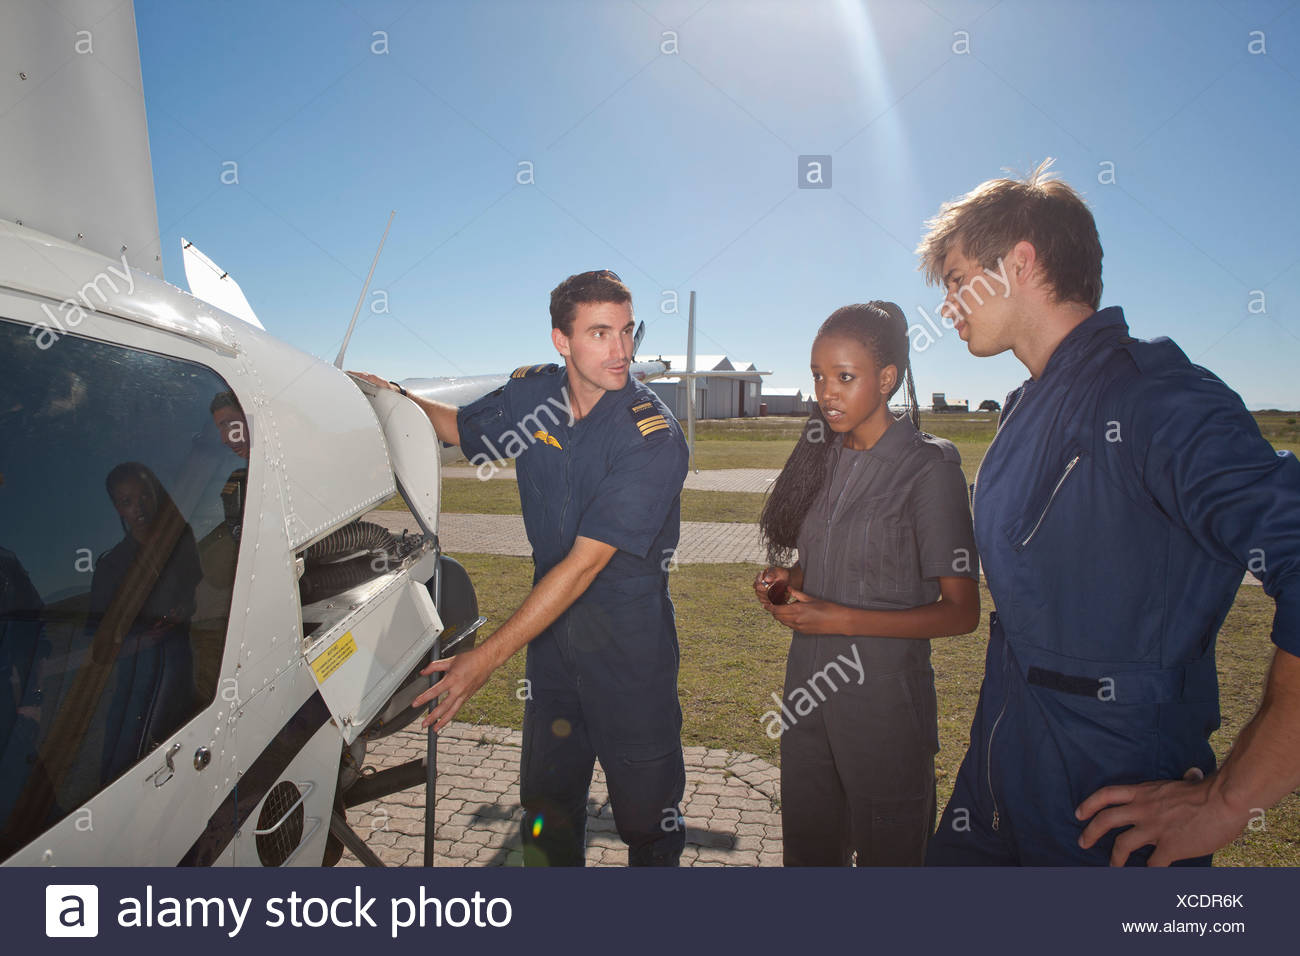 Flight instructor showing student pilots engine of helicopter - Stock Image